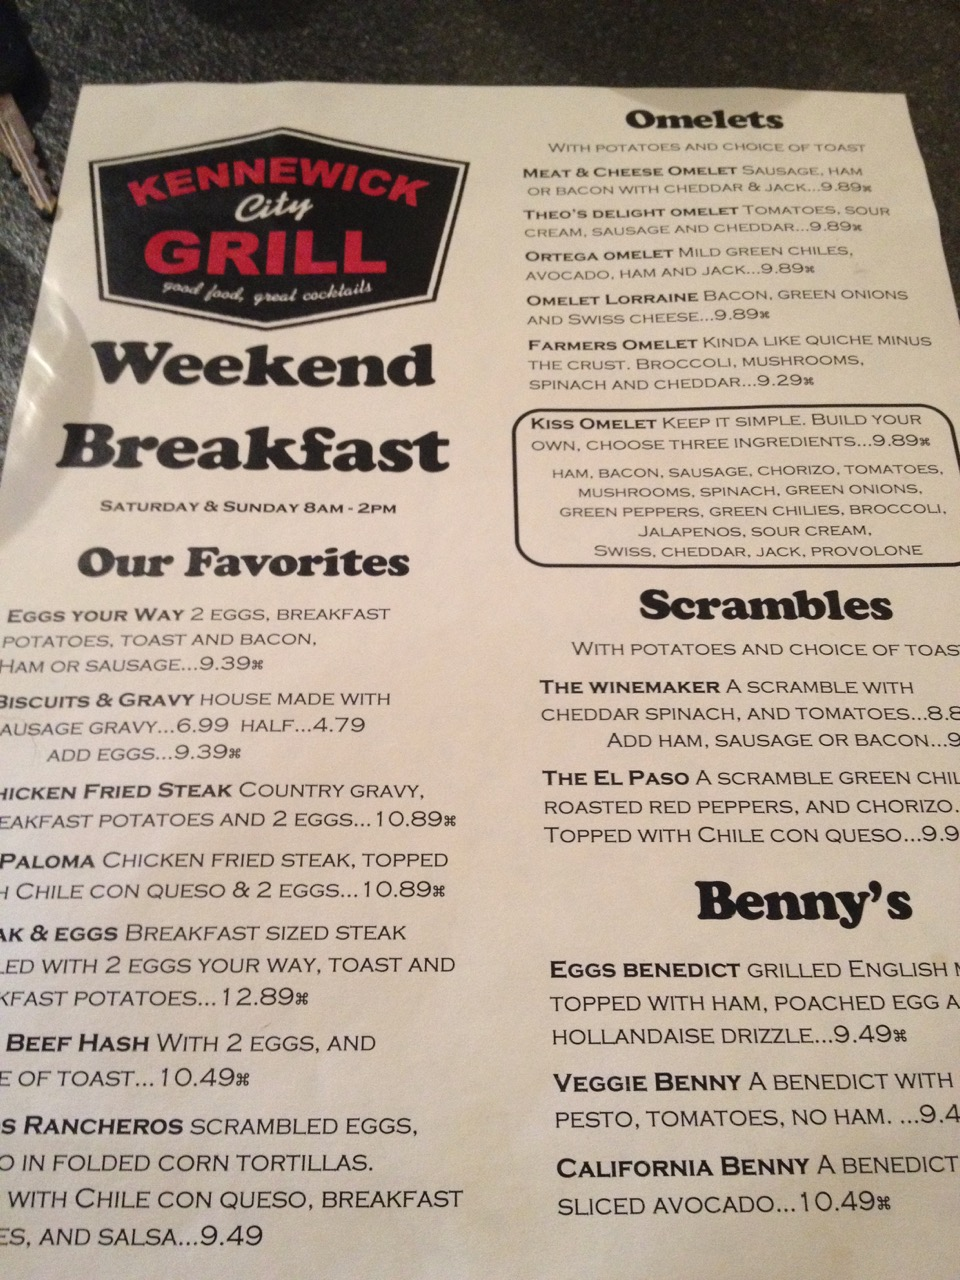 The Death of Another Great Local Restaurant – Kennewick City Grill – August 15 2012